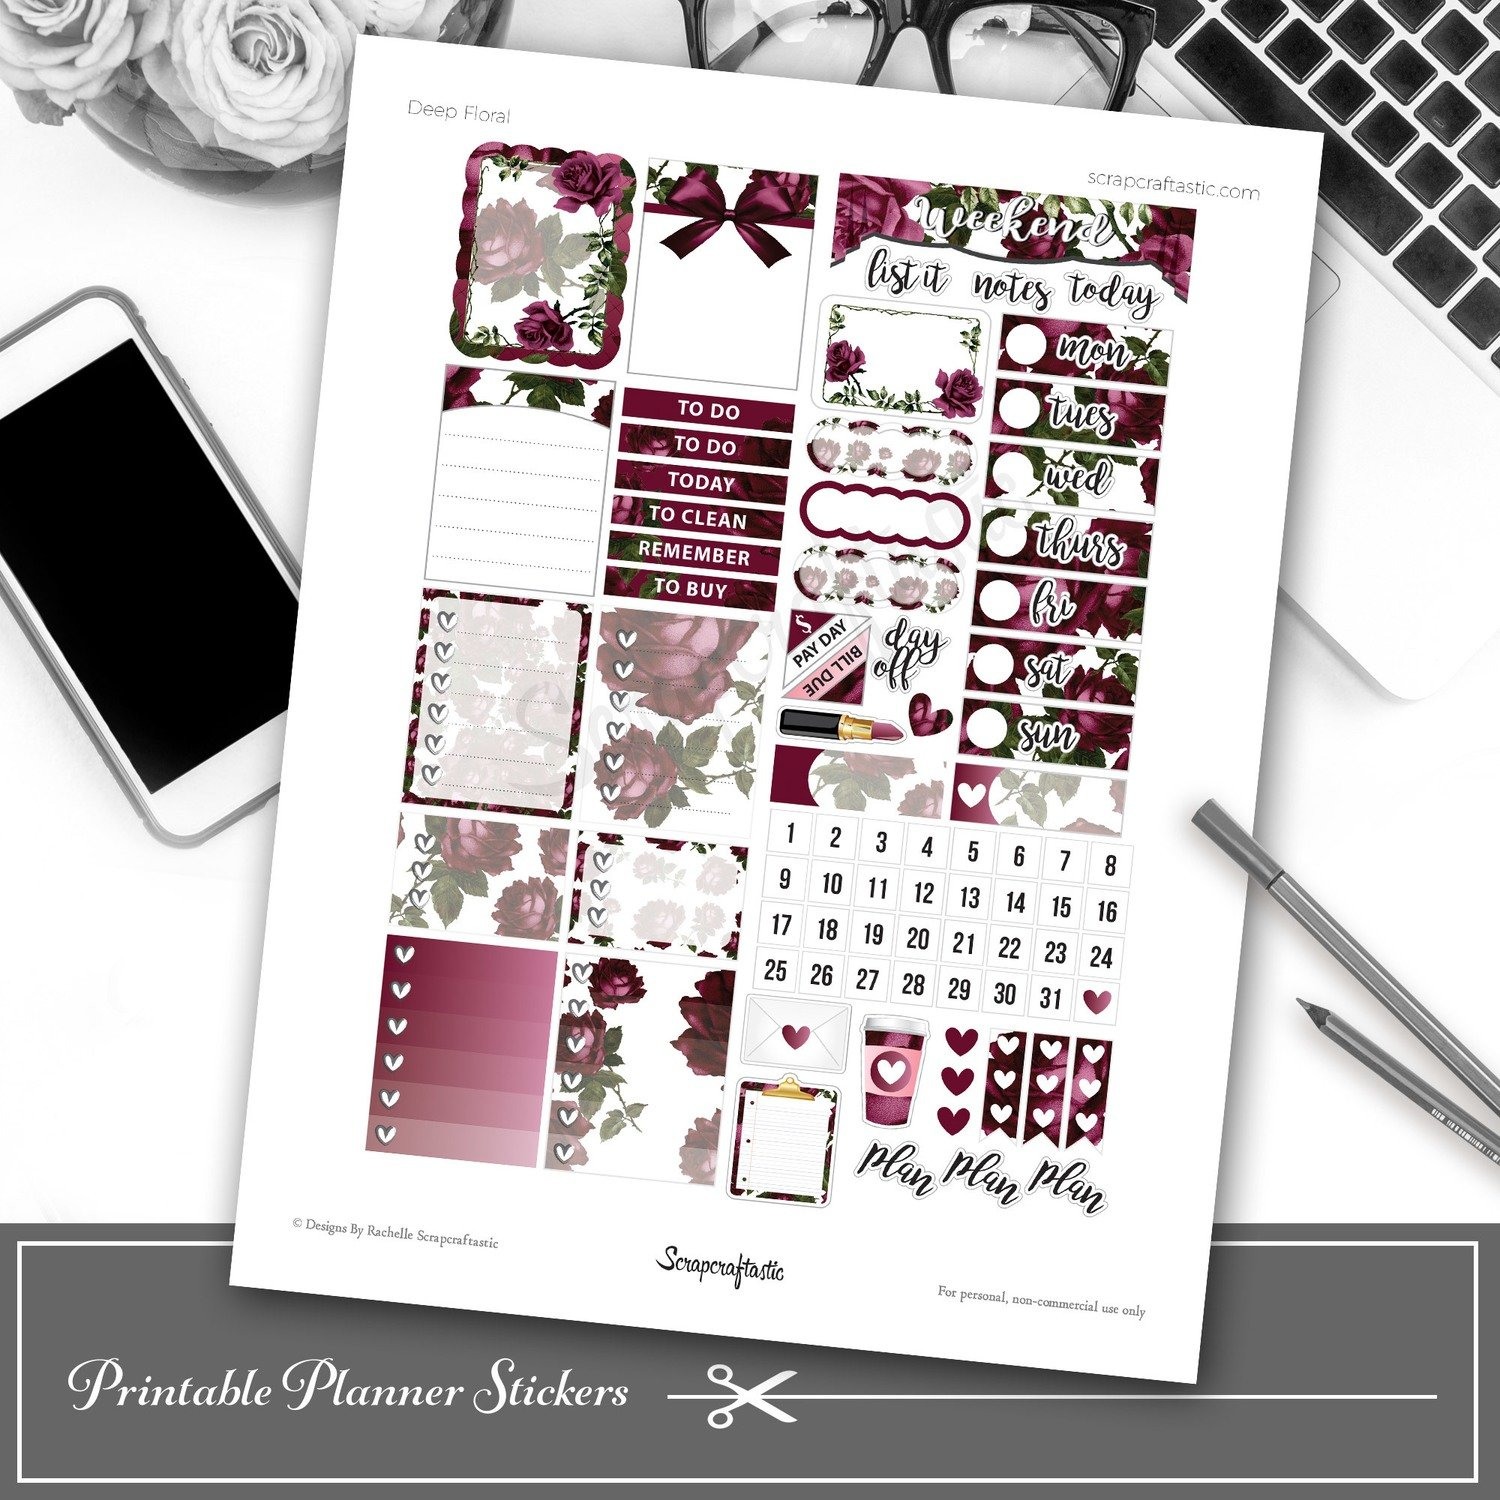 Deep Floral Printable Planner Stickers